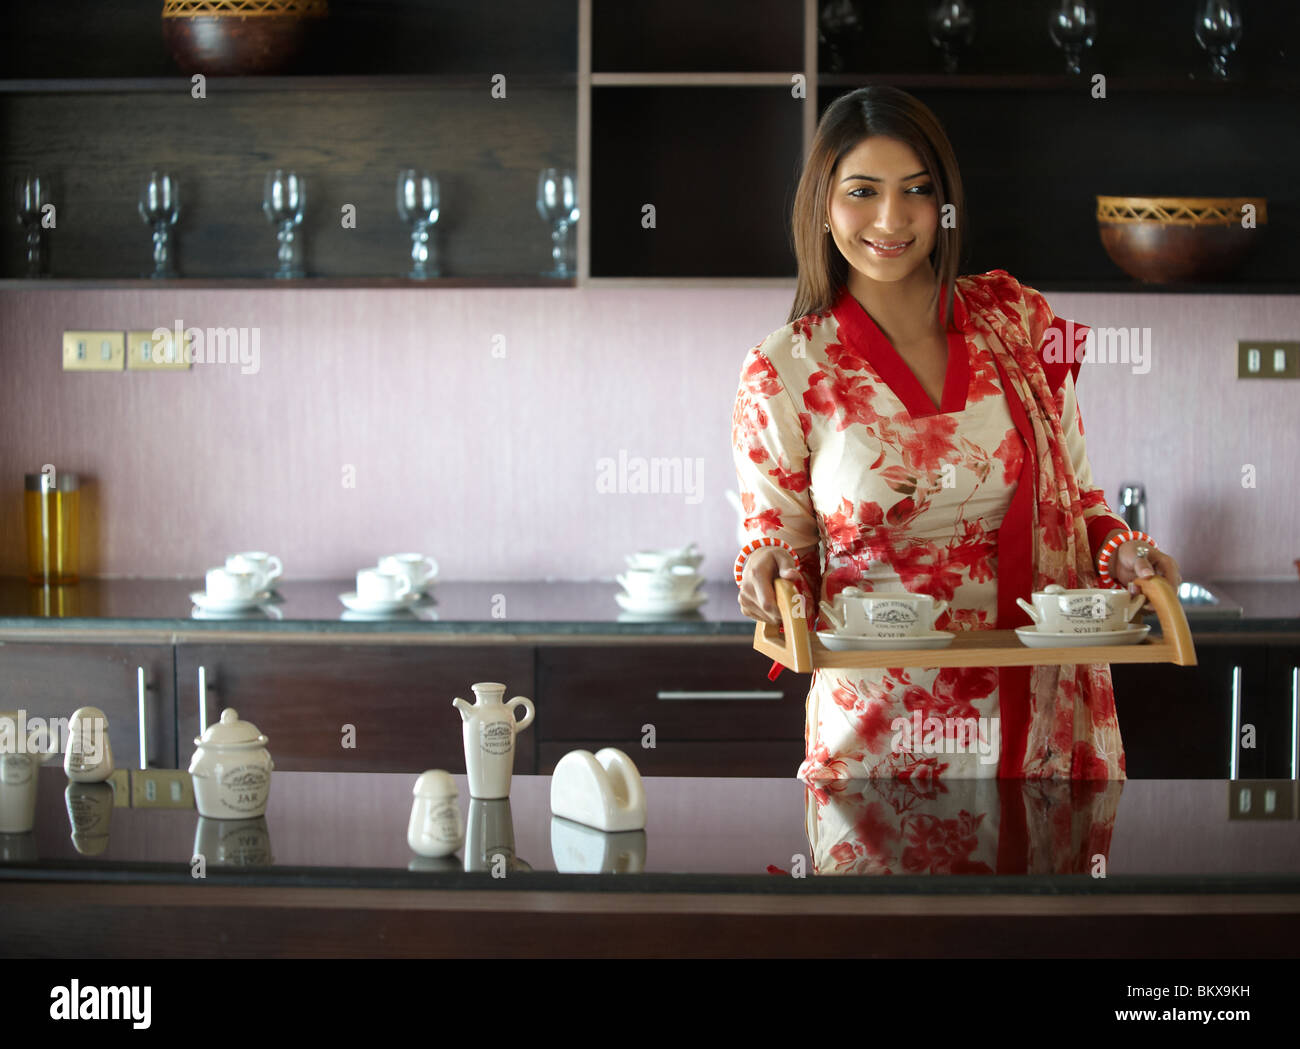 Indian Woman Cooking Kitchen Home Food Portrait Asian Modern